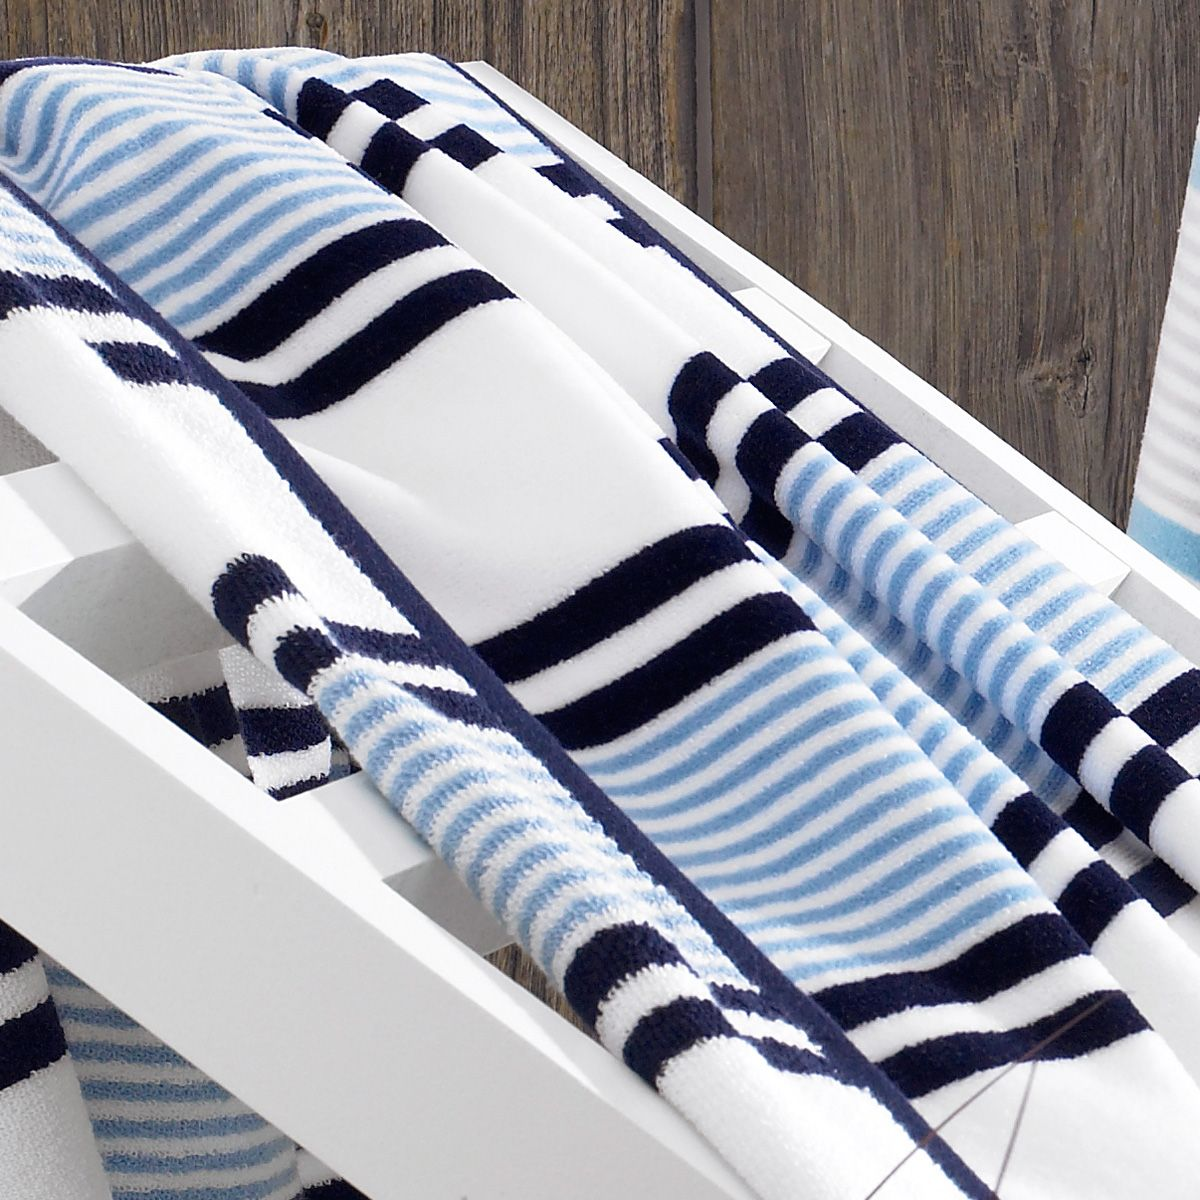 Piazza Di Spagna Luxury Beach Towel With Images Luxury Beach